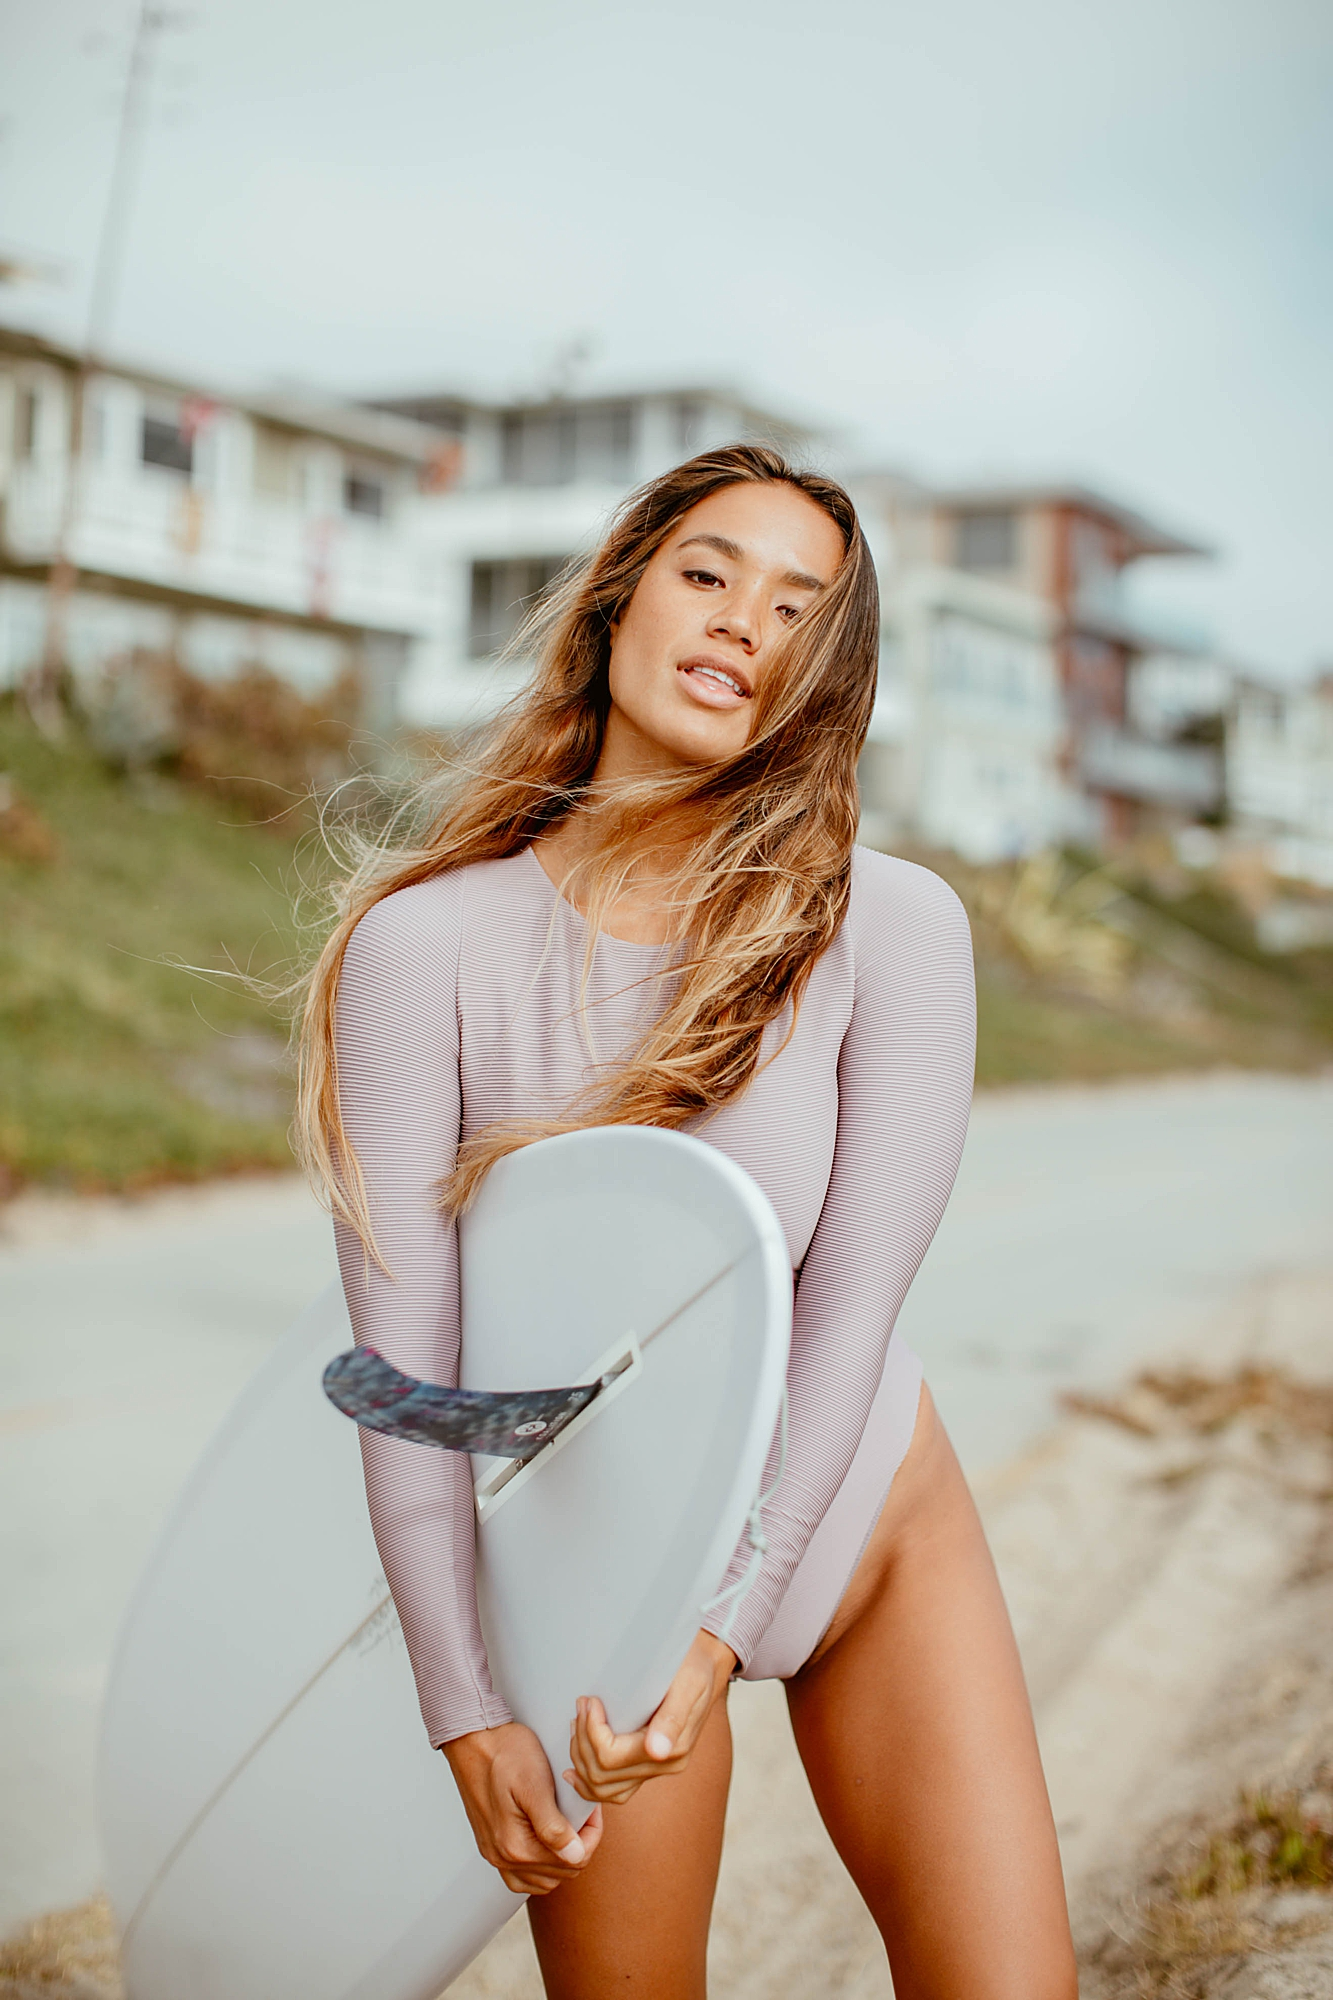 Southern California Surf and Lifestyle Fashion Photographer Kelee Bovelle @keleeb X Eryn Krouse @erynkrouse_0005.jpg